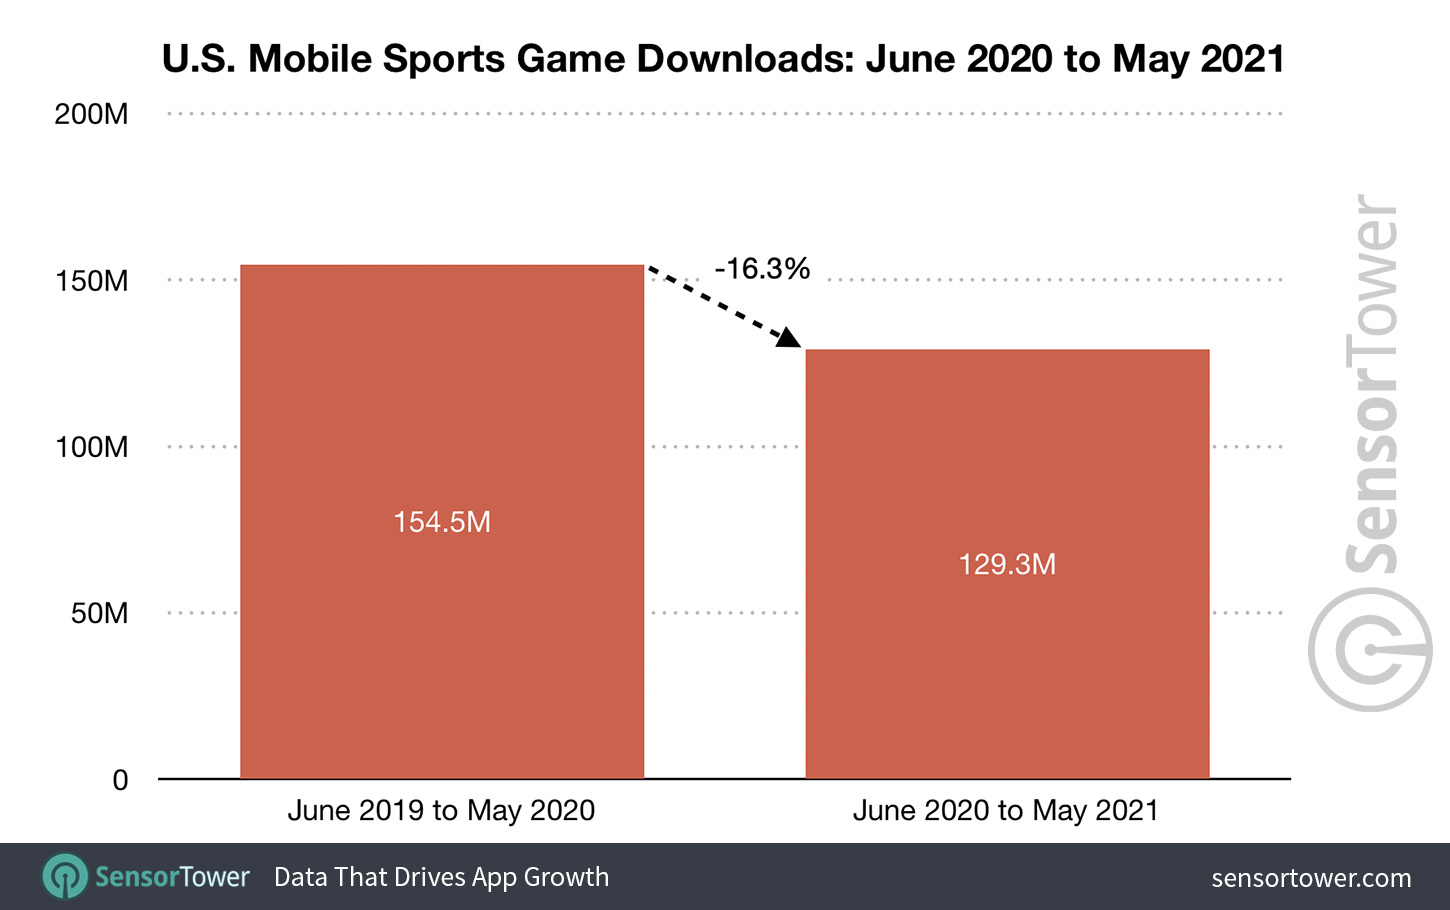 US mobile sports game downloads: June 1, 2020 and May 31, 2021